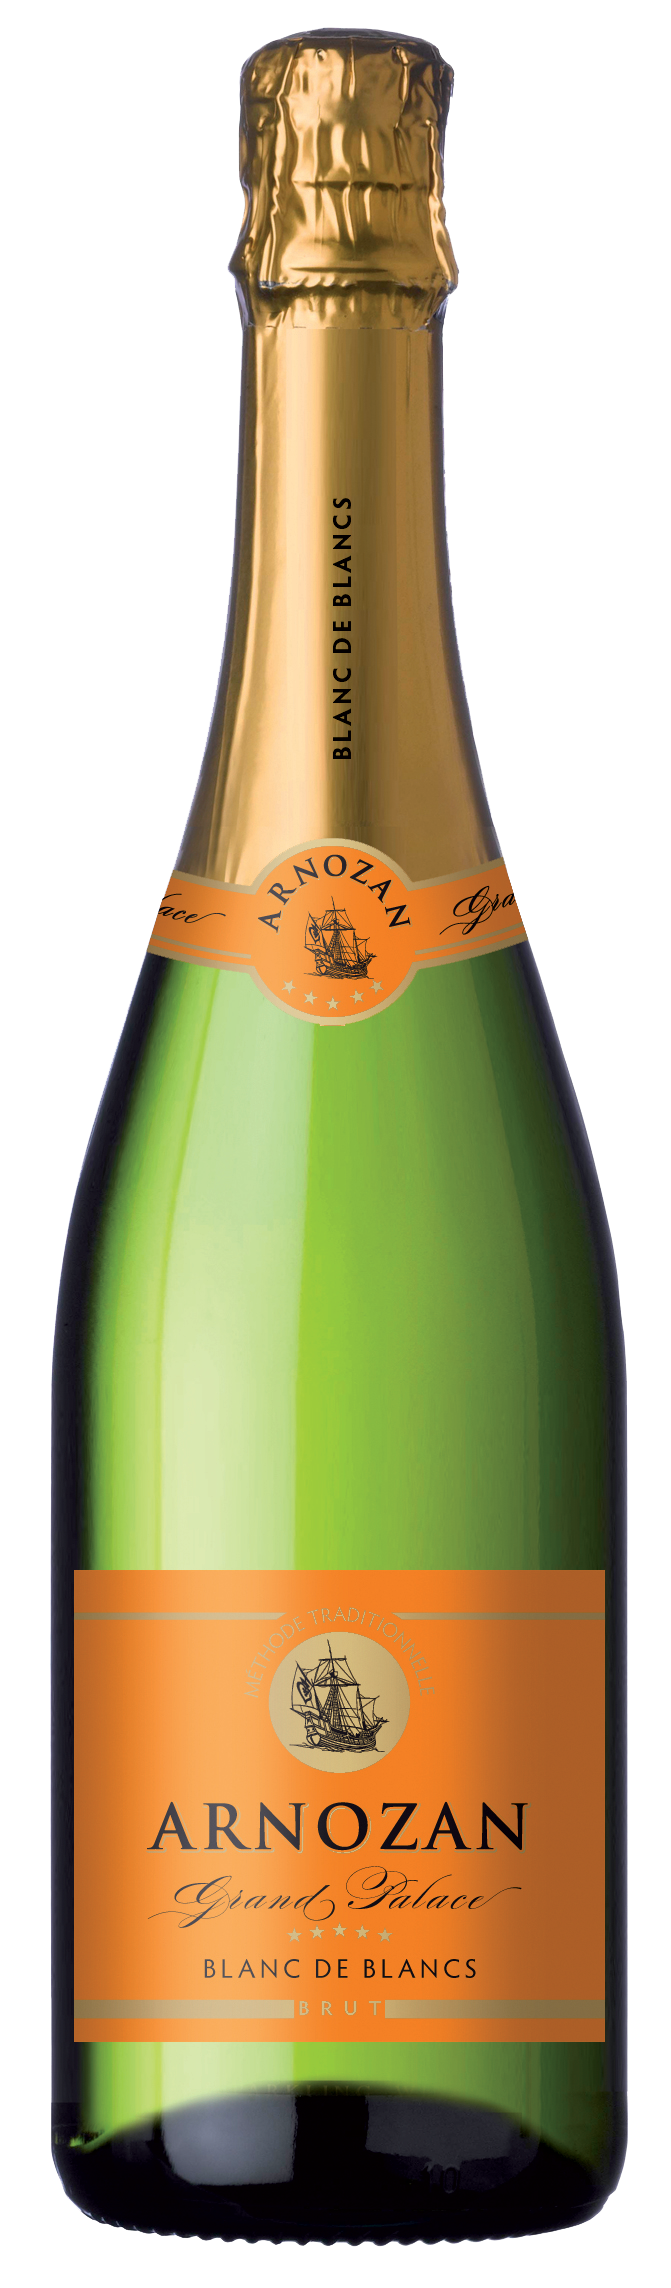 Arnozan, is a Crémant de Bordeaux from Producta Vignobles by PRODUCTA VIGNOBLES